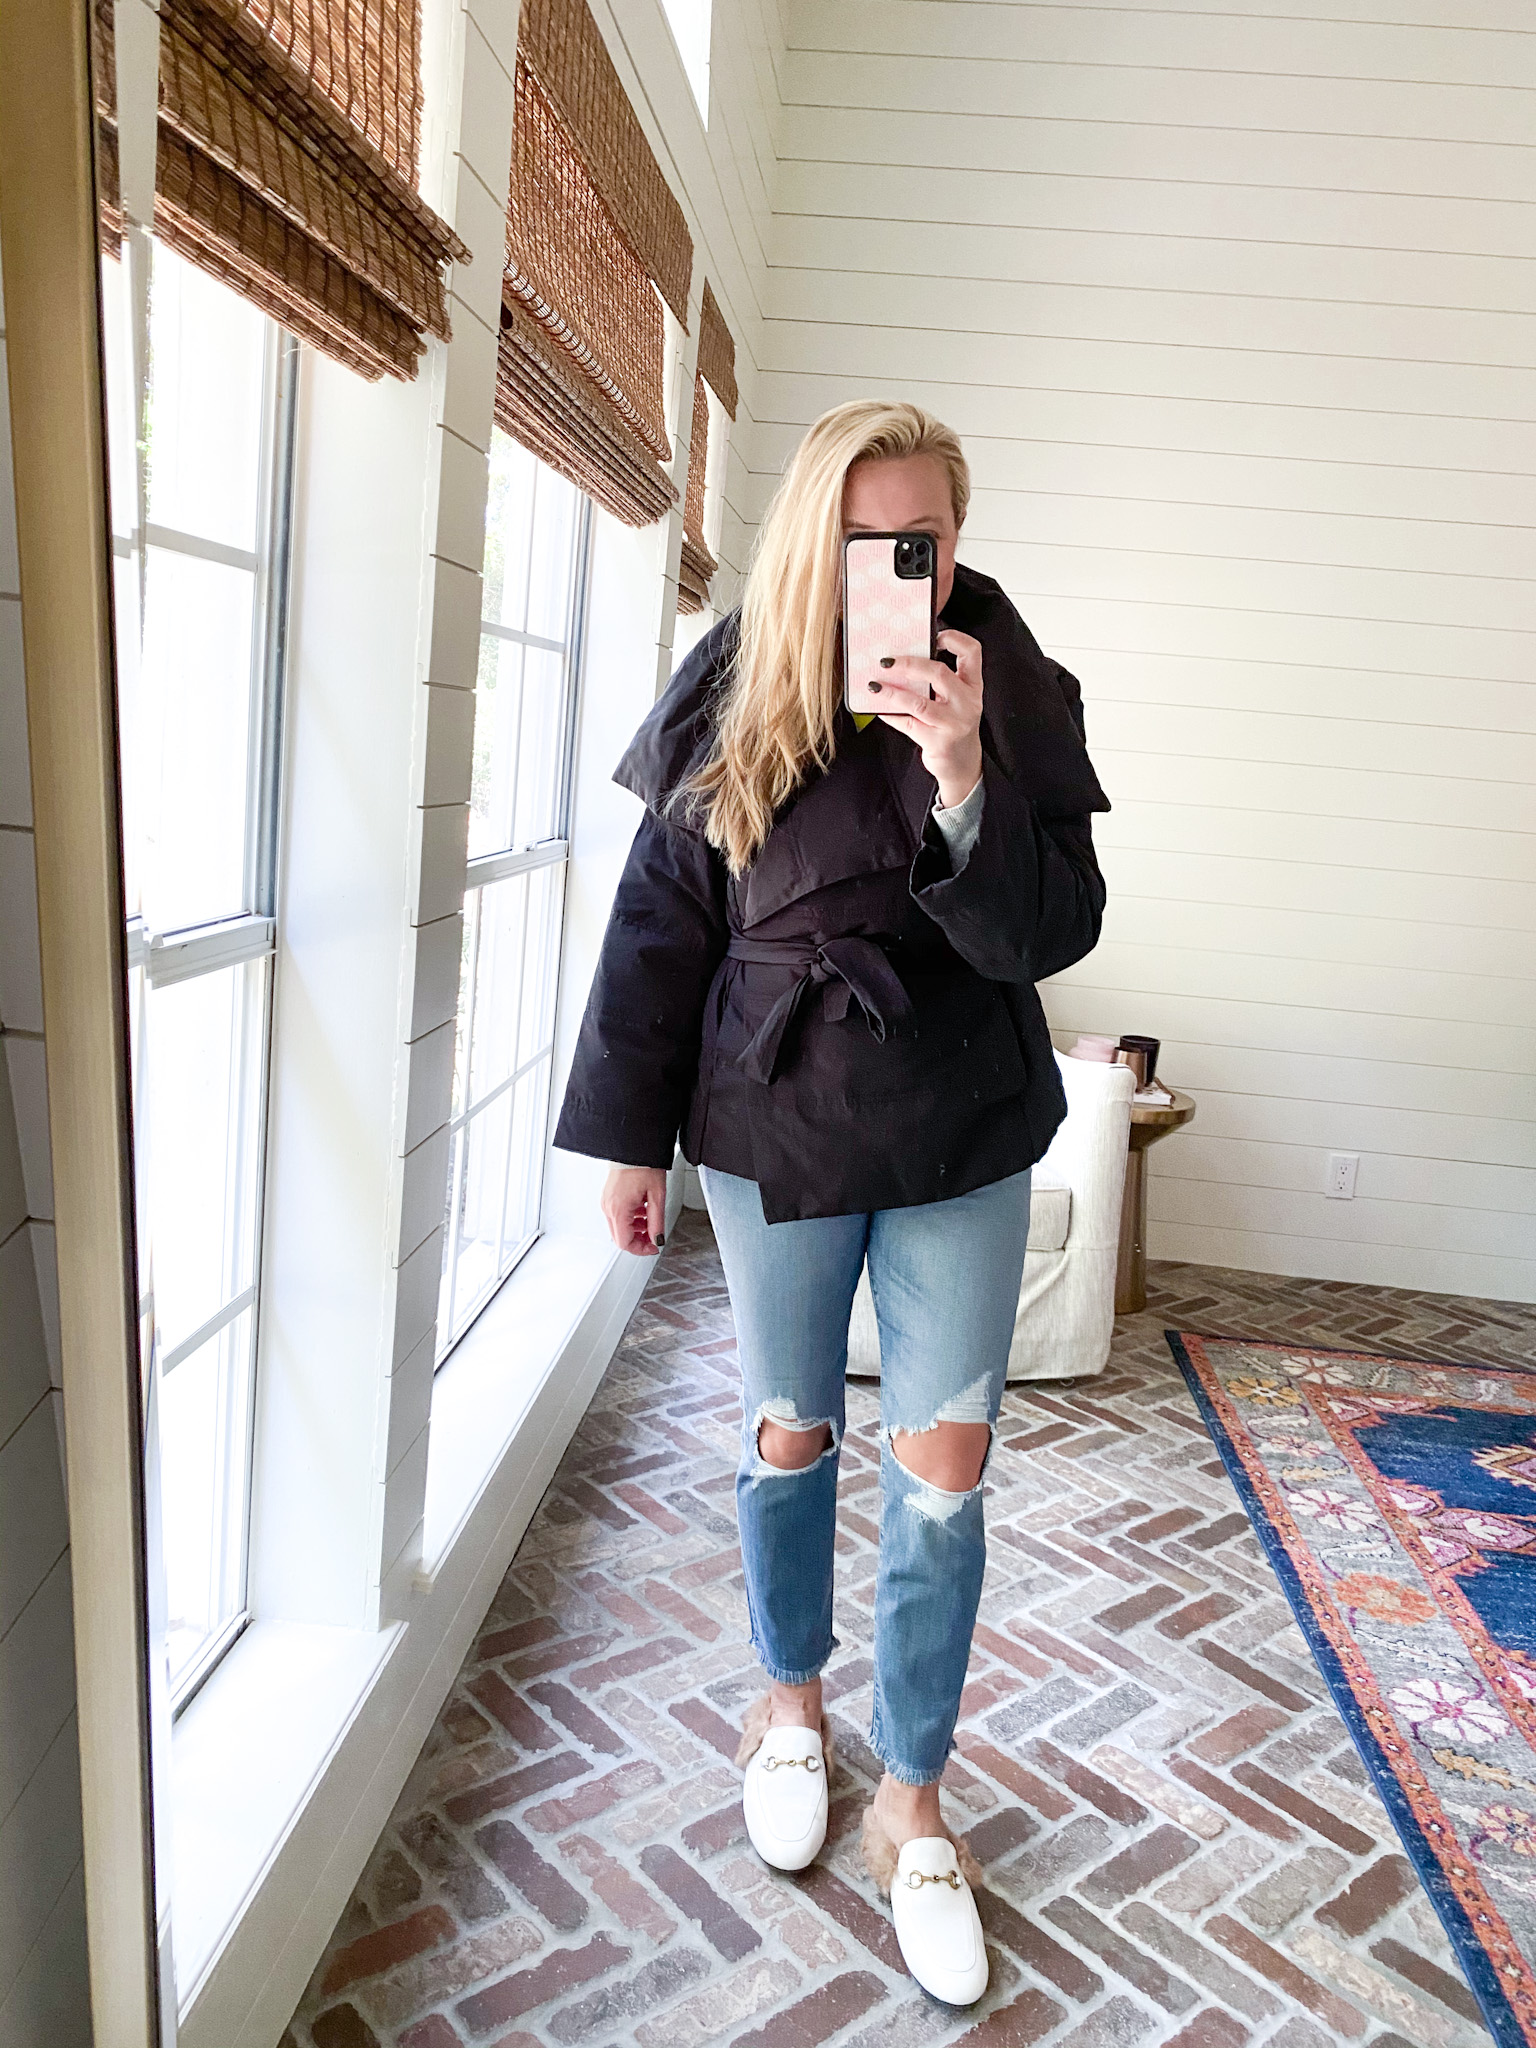 Prime Day by popular Houston fashion blog, Fancy Ashley: image of a woman wearing a Amazon coat, distressed denim, and white mules.